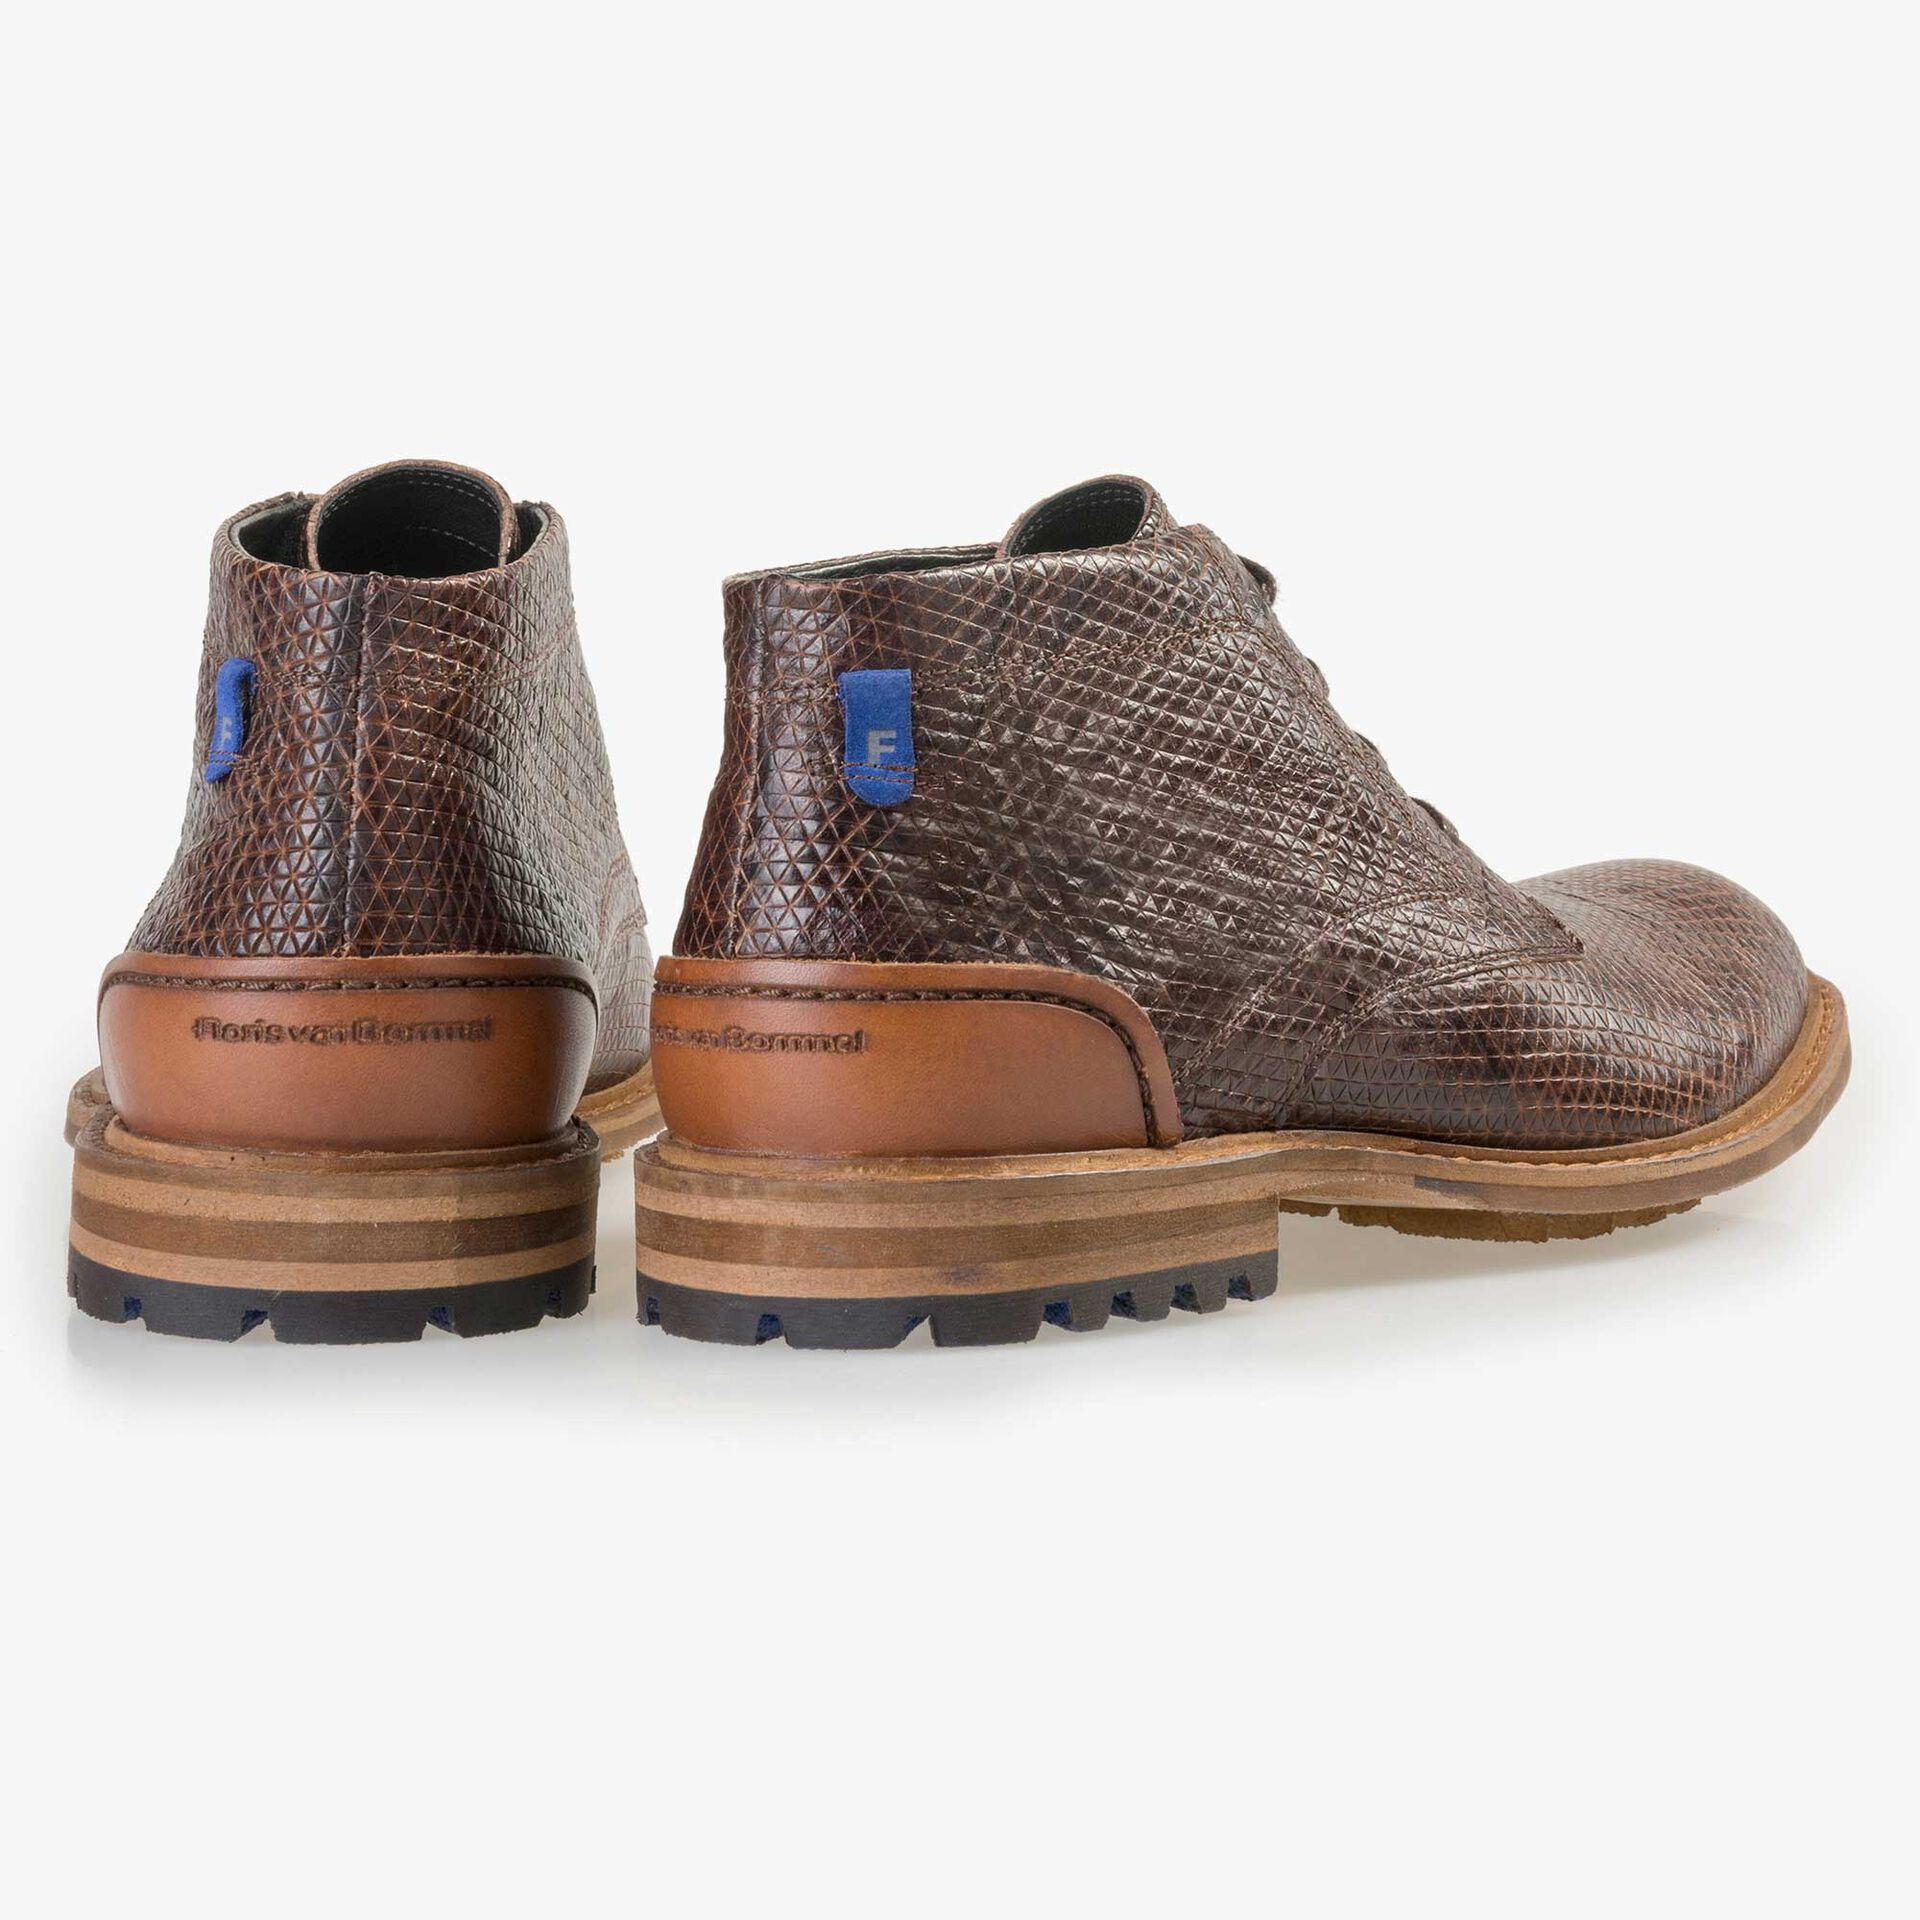 Floris van Bommel men's cognac-coloured leather lace boot finished with a snake print